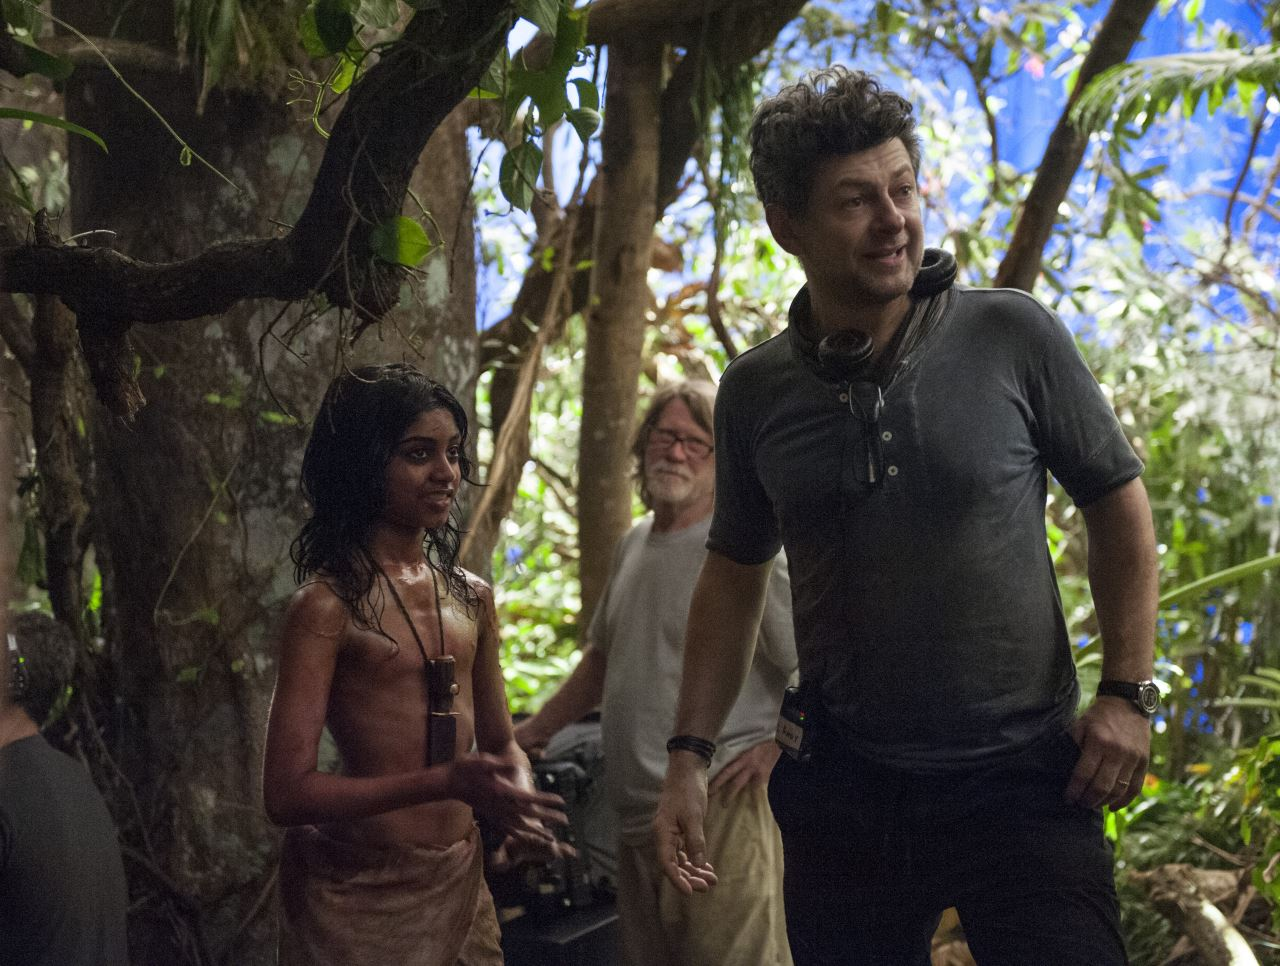 Netflix's Mowgli: Andy Serkis, Christian Bale on India Focus, Performance Capture, and More